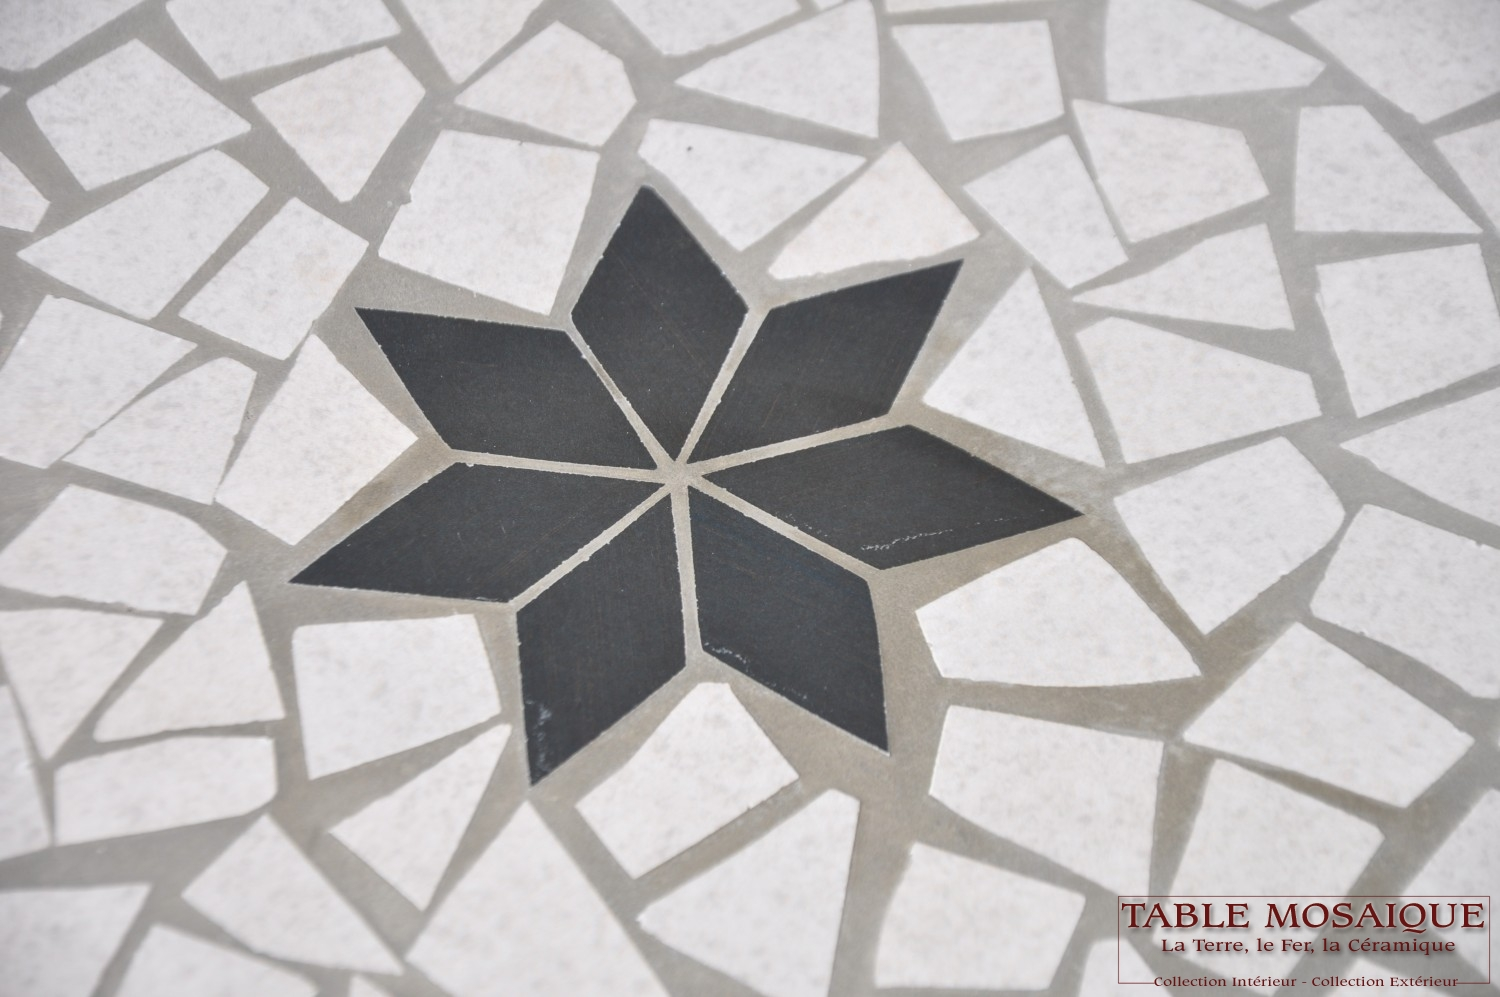 tablemosaique com table ronde 110cm gris et prune jpeg (4)